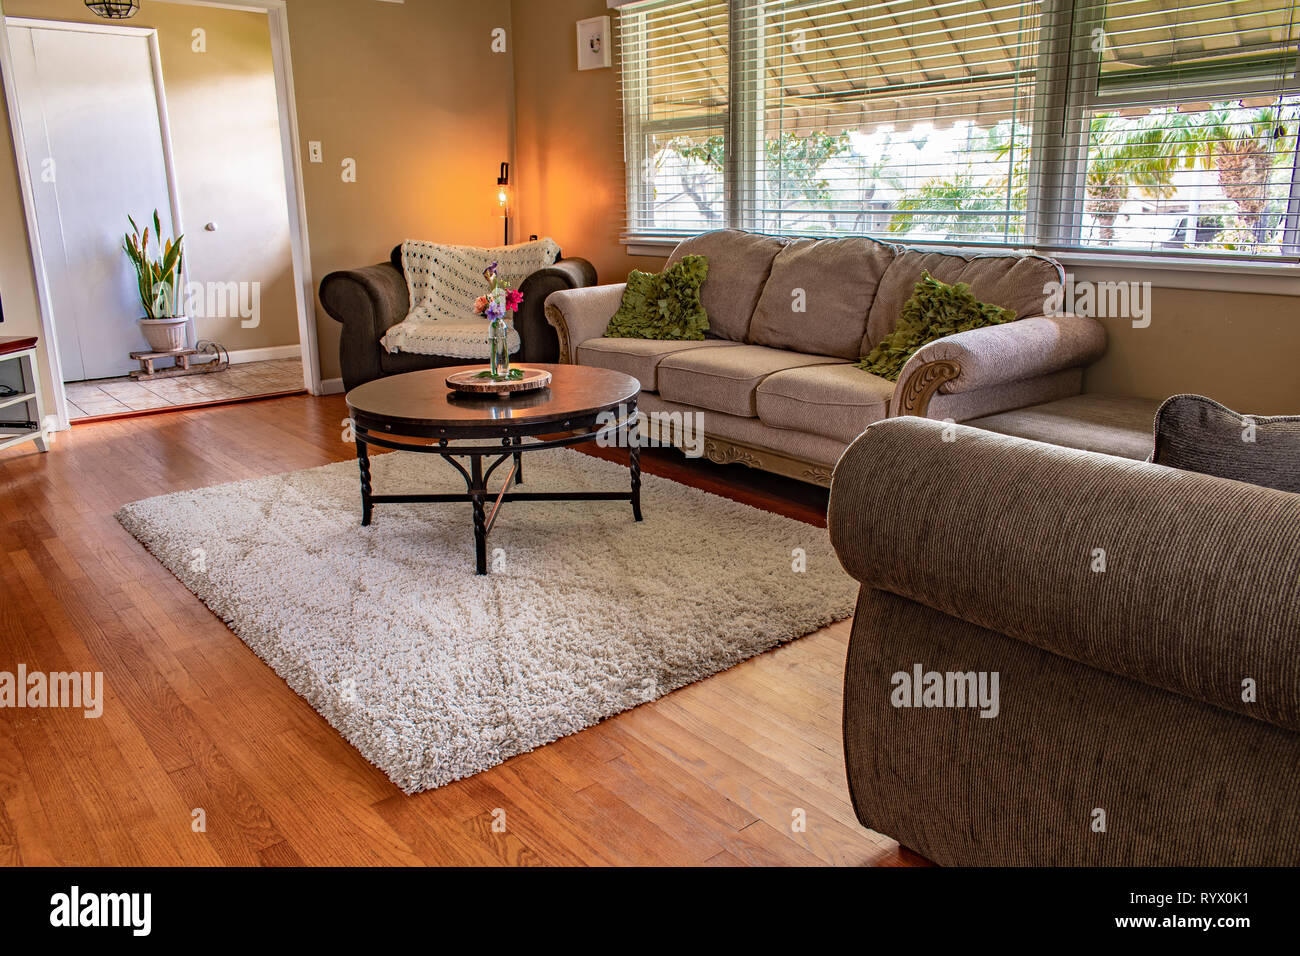 A comfortable looking family room.  Couches and rug resting on a plank hardwood floor - Stock Image